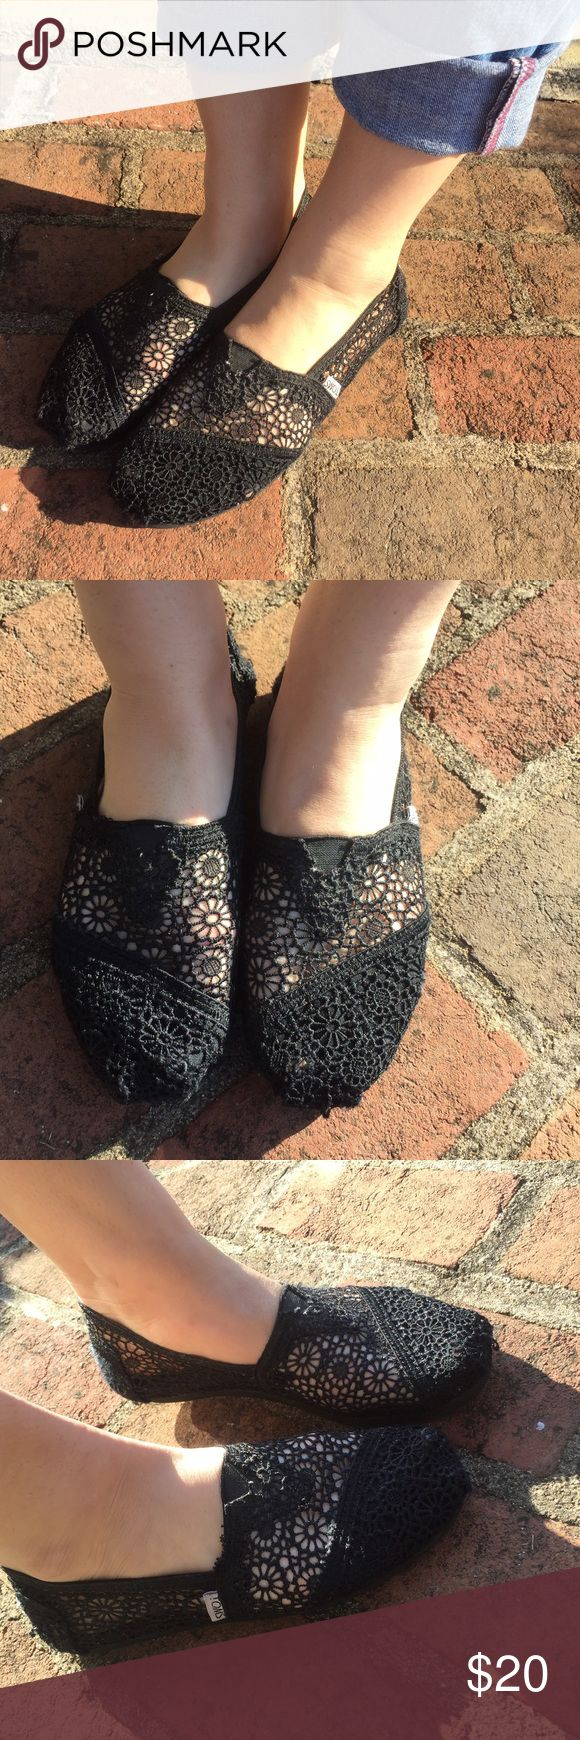 Black Lace Toms They are slightly worn TOMS Shoes Flats & Loafers